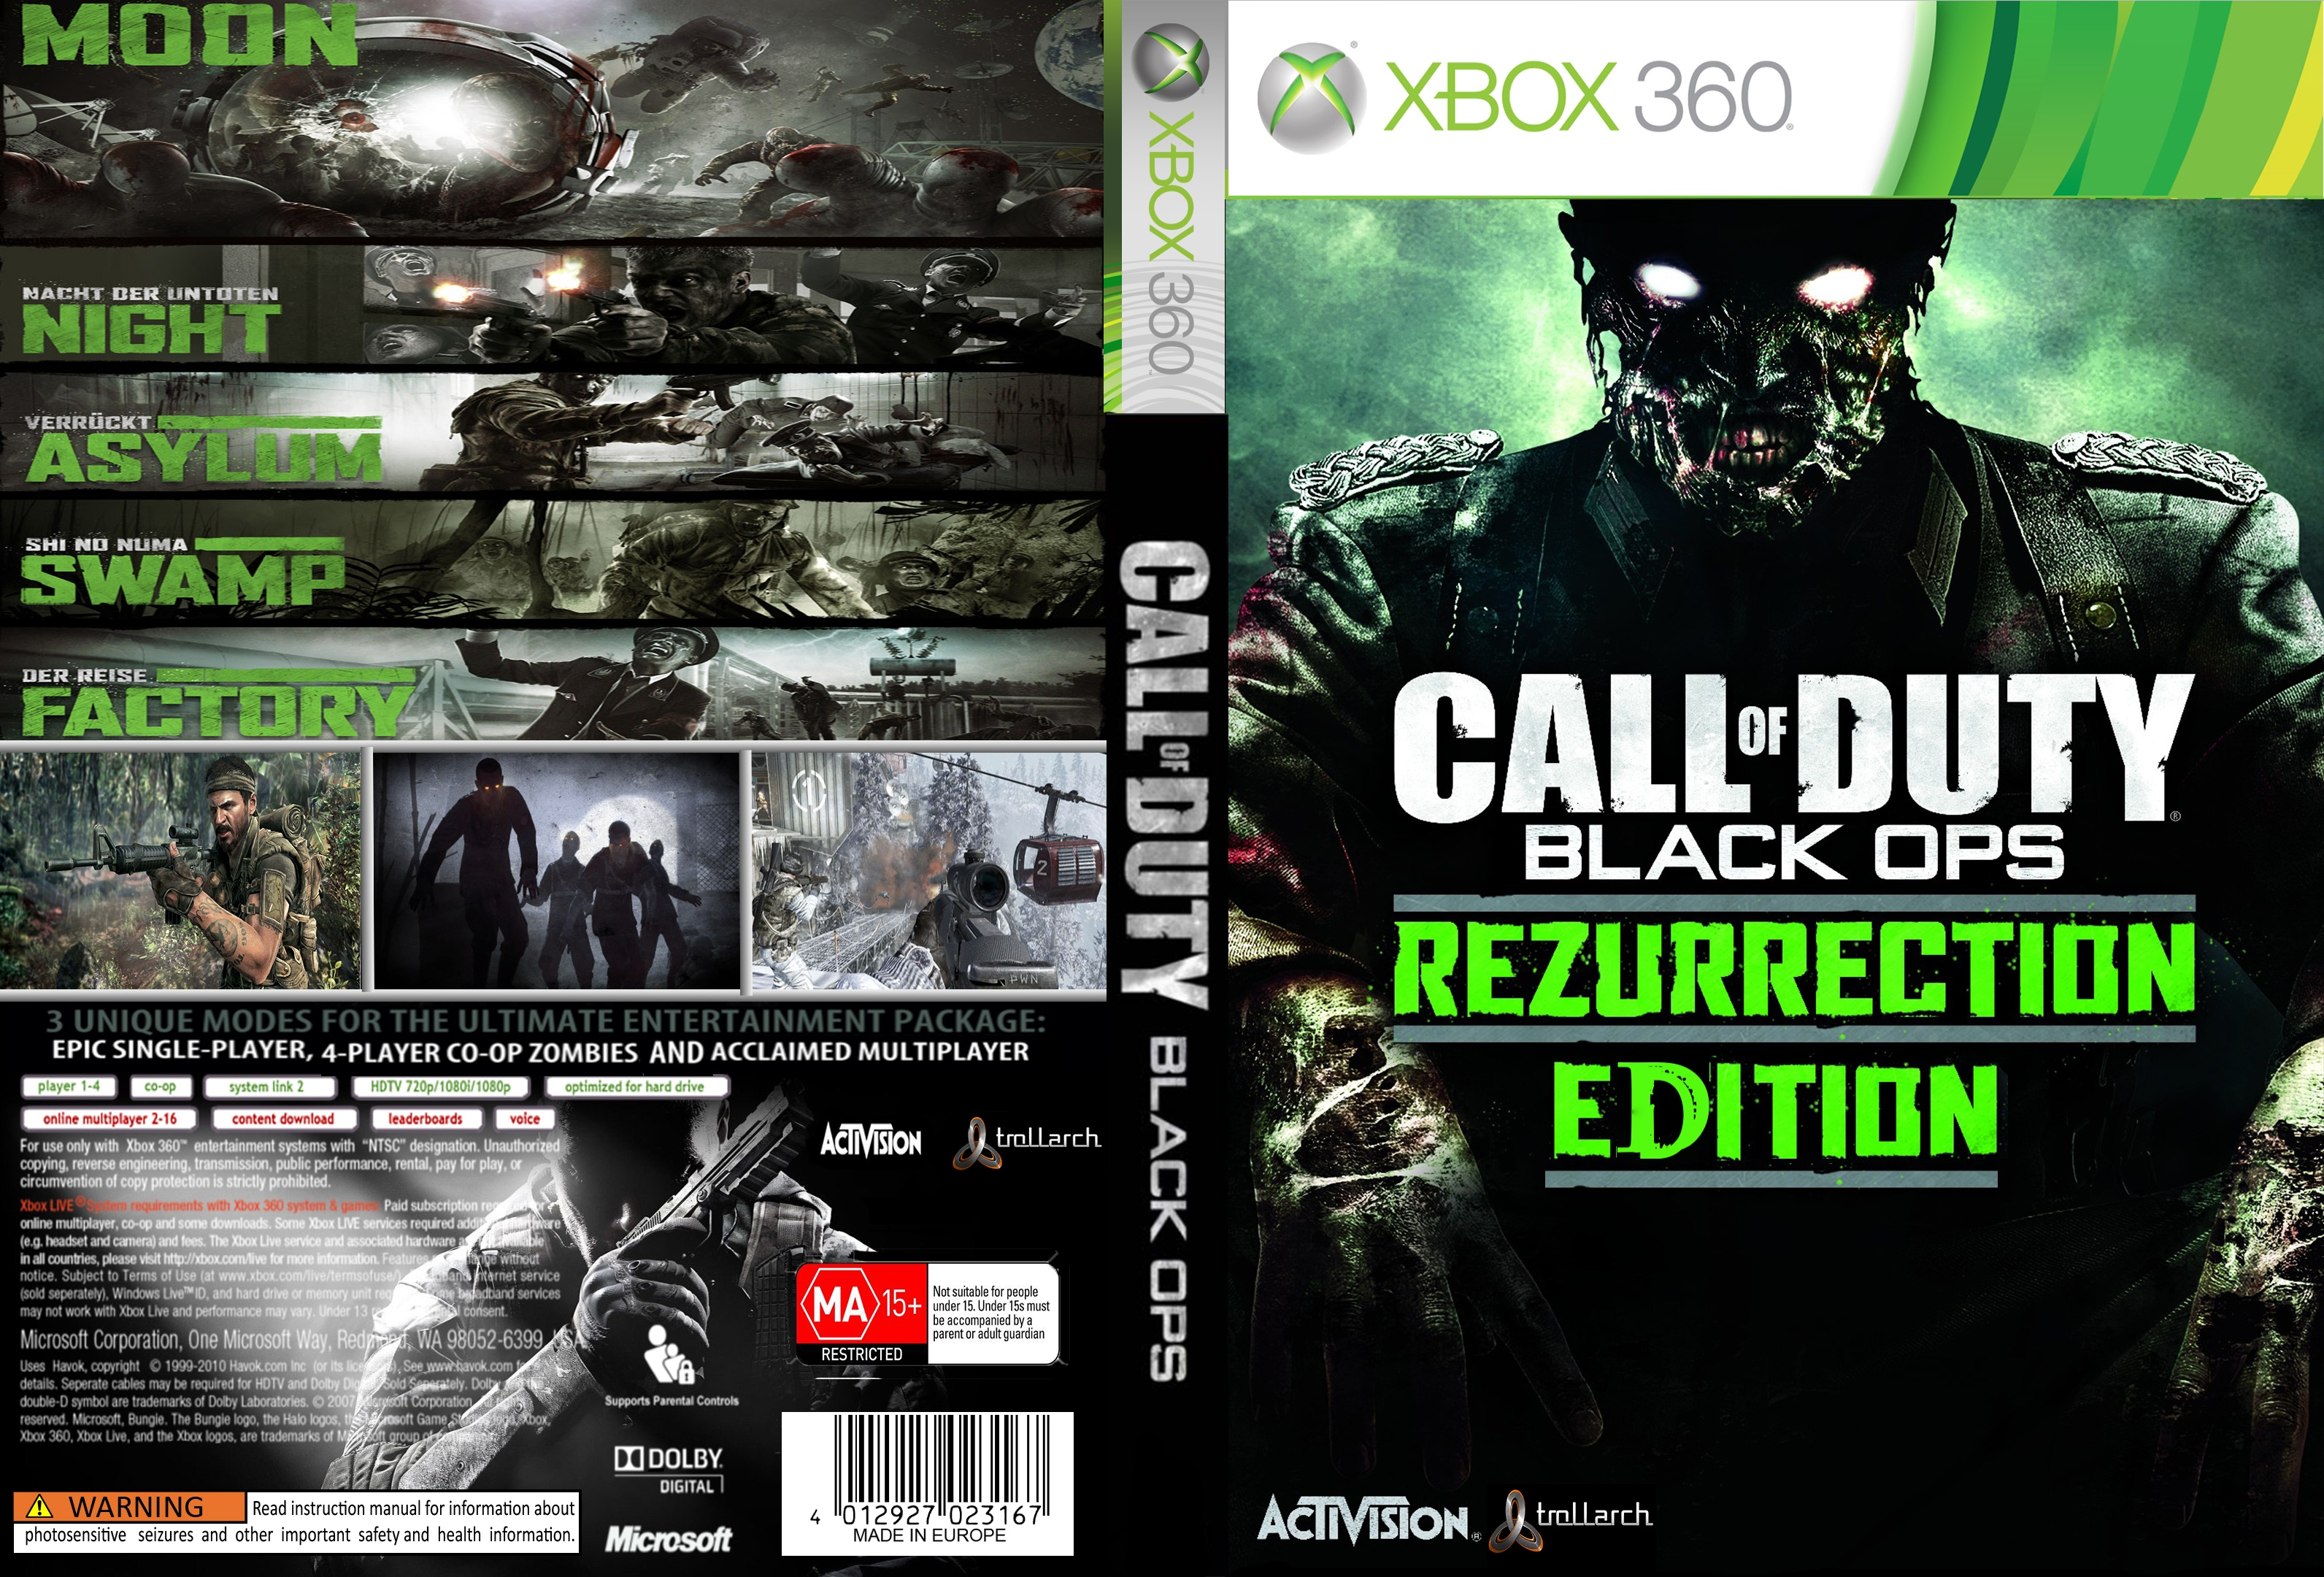 Call of Duty: Black Ops (also known as Black Ops) is the seventh main installment of the Call of Duty series and was developed by Treyarch. The game was released on November 9, 2010 How To Use How To Inject Xbox 360 Content Using Usb Xtaf v44 Download BlackOpsDemo.7z